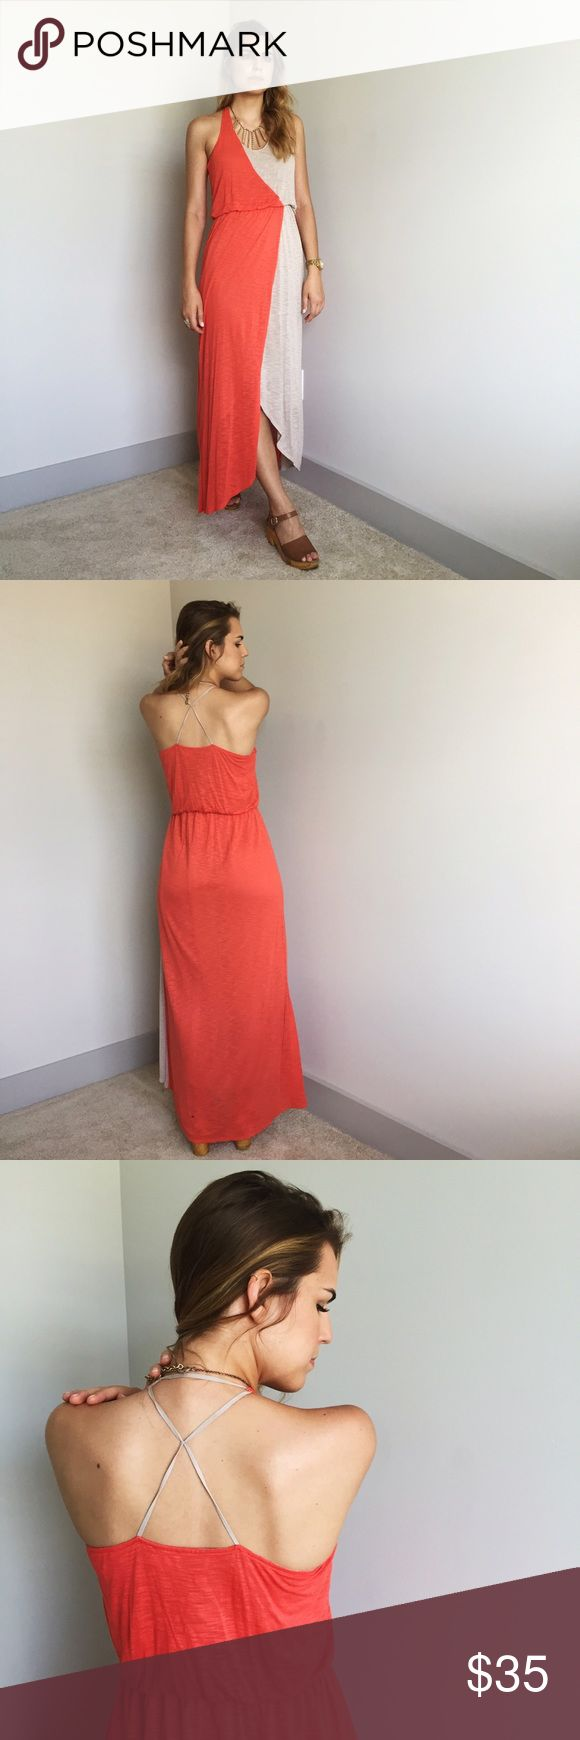 Anthropologie Coral Maxi Dress Anthropologie Coral Maxi Dress is the summer dress you have been searching for. Effortless cool for any event. Anthropologie Dresses Maxi